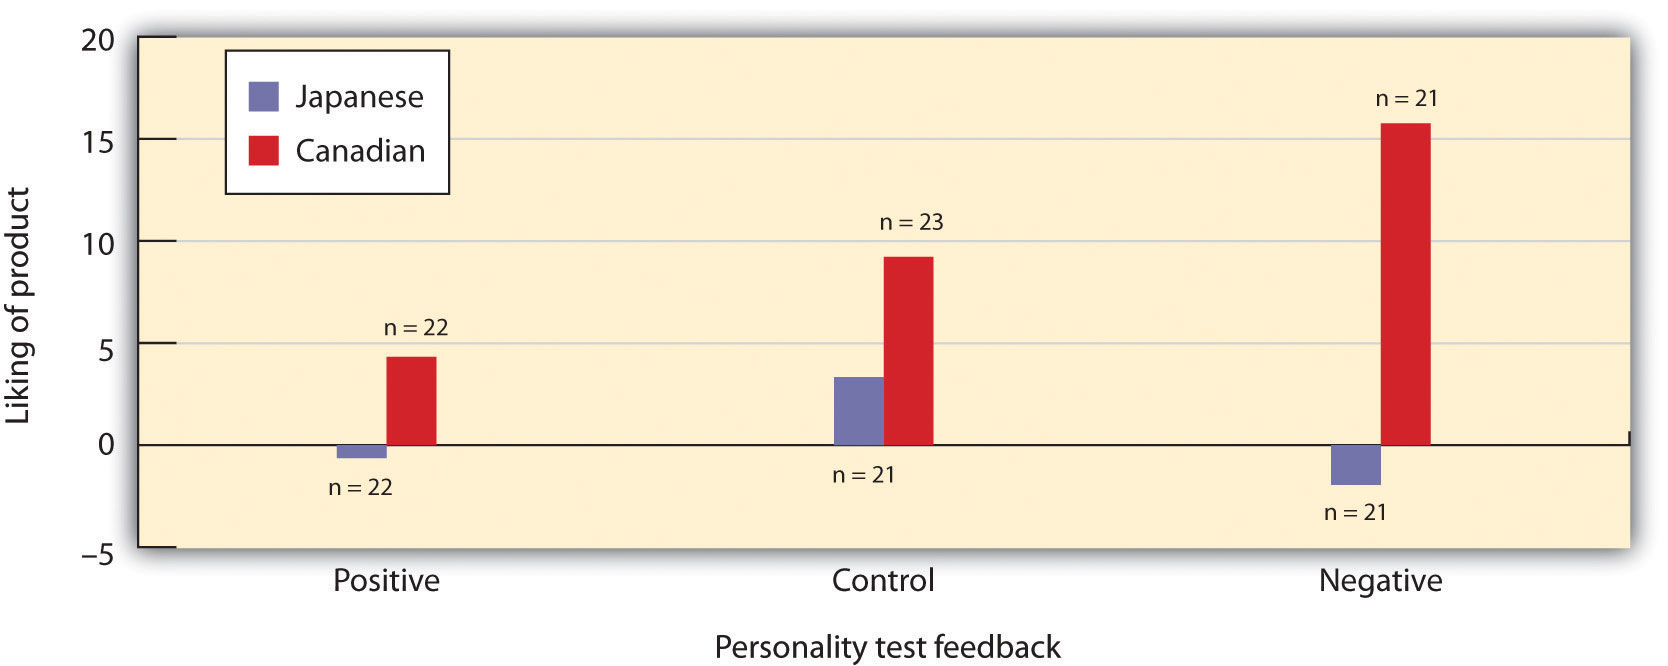 The Canadian participants showed a greater spread of alternatives when their self-esteem was threatened, but Japanese participants did not. Data are from Heine and Lehman (1997).